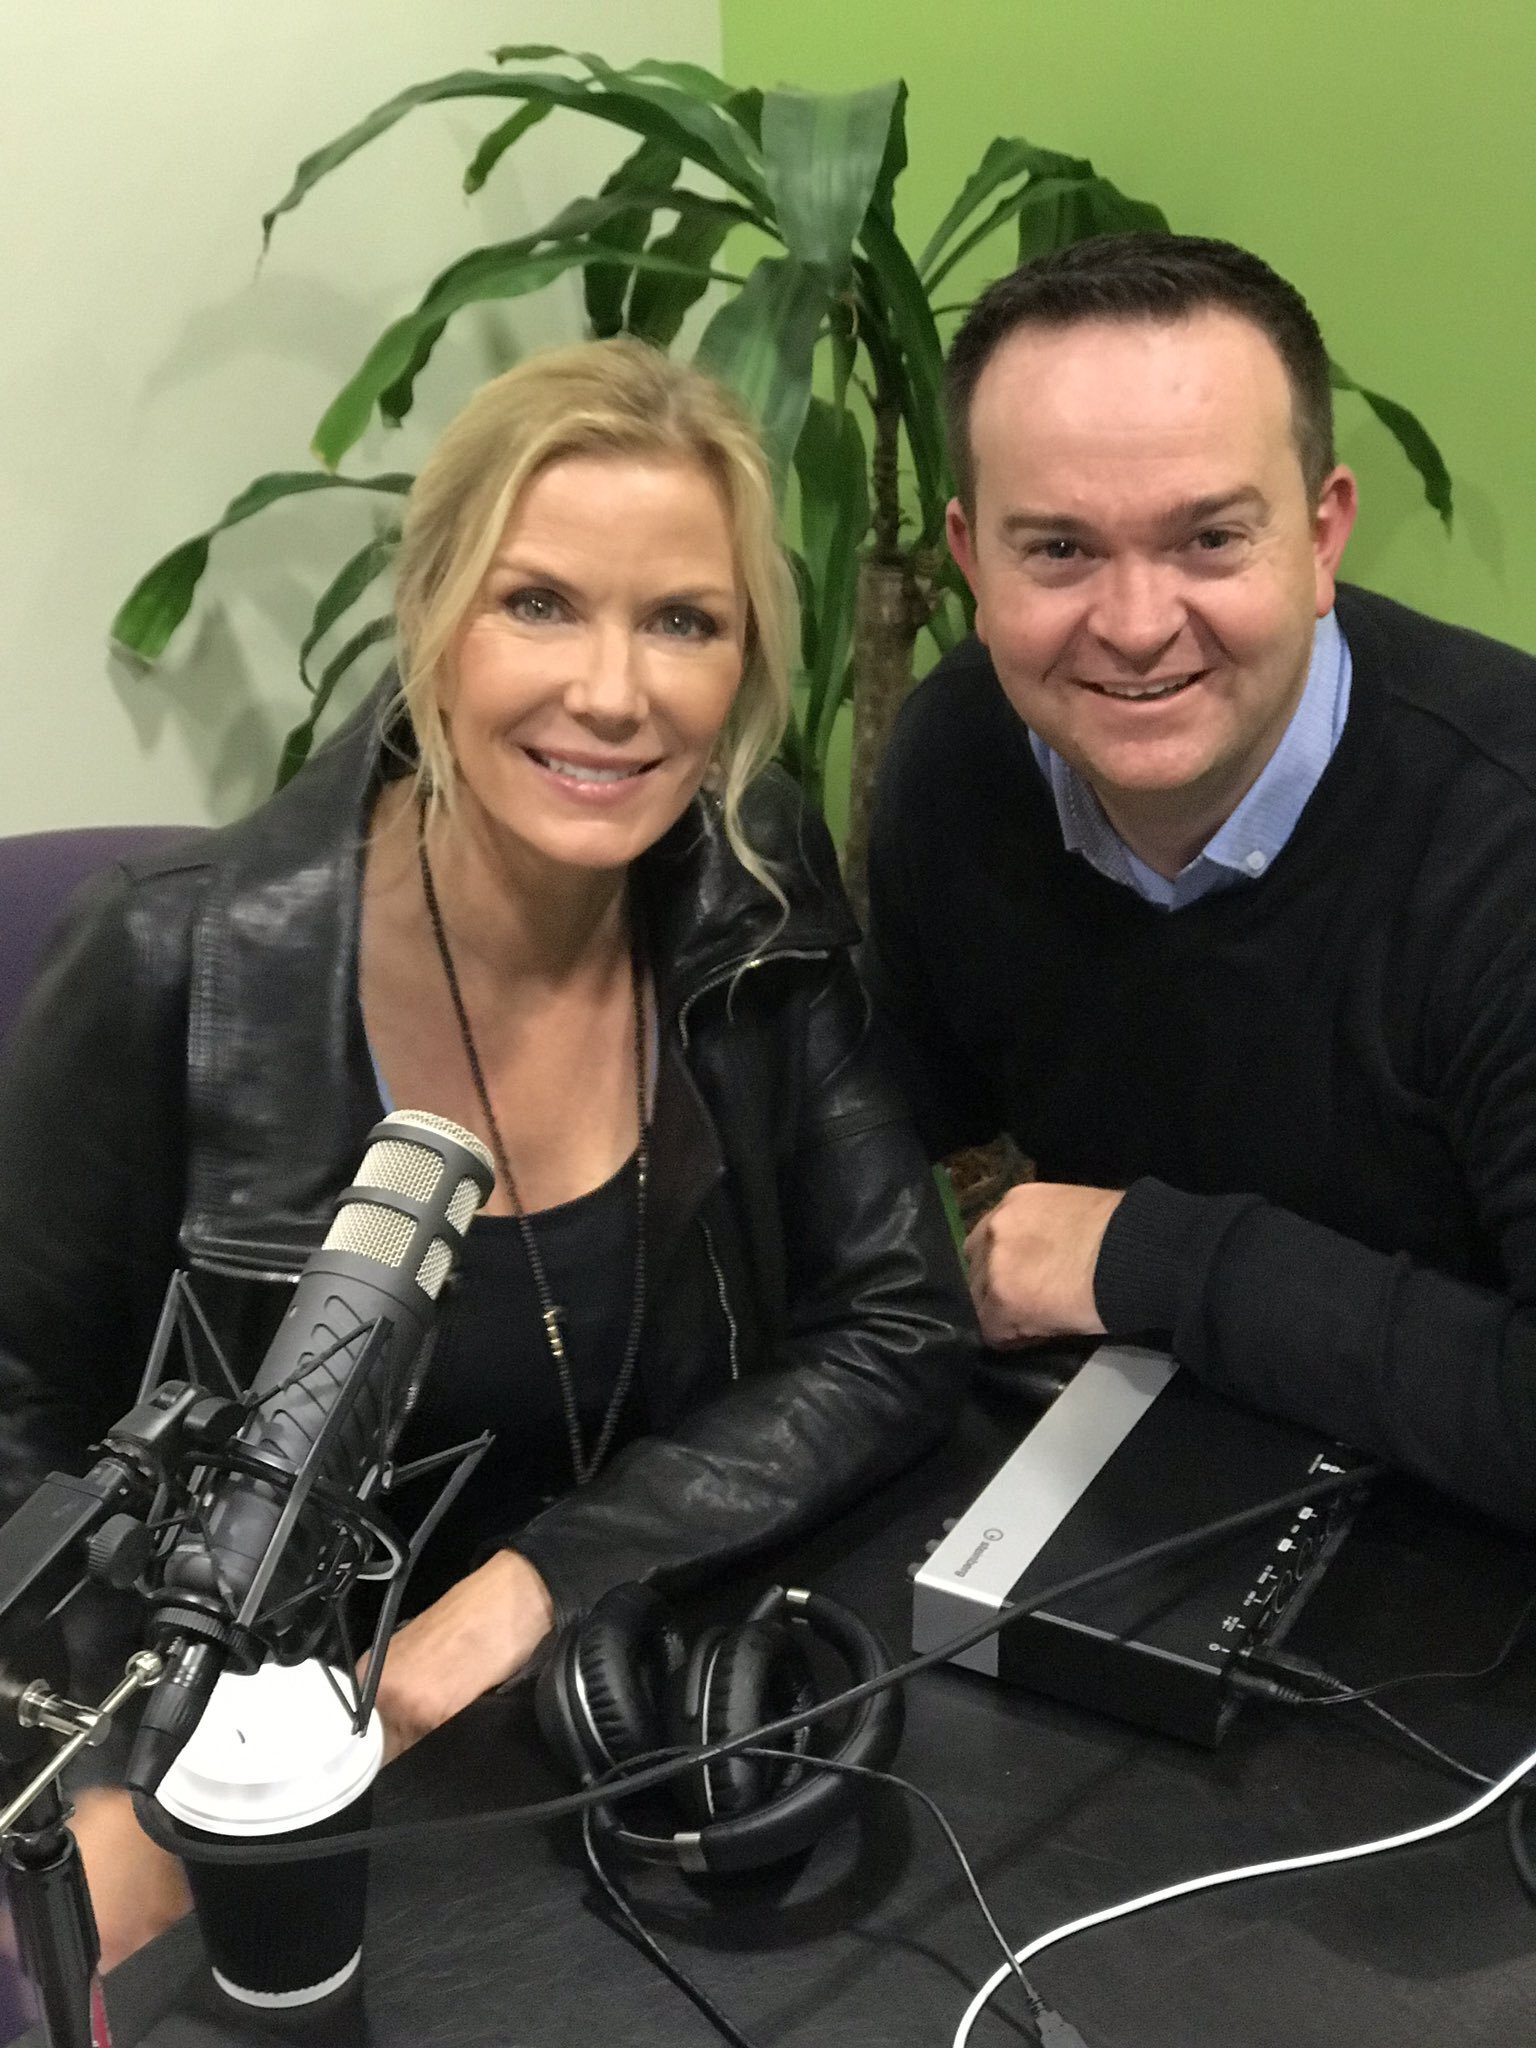 Katherine Kelly Lang  and  Robert McKnight  recording an episode of the  McKnight Tonight Podcast   Photo: Katherine Kelly Lang